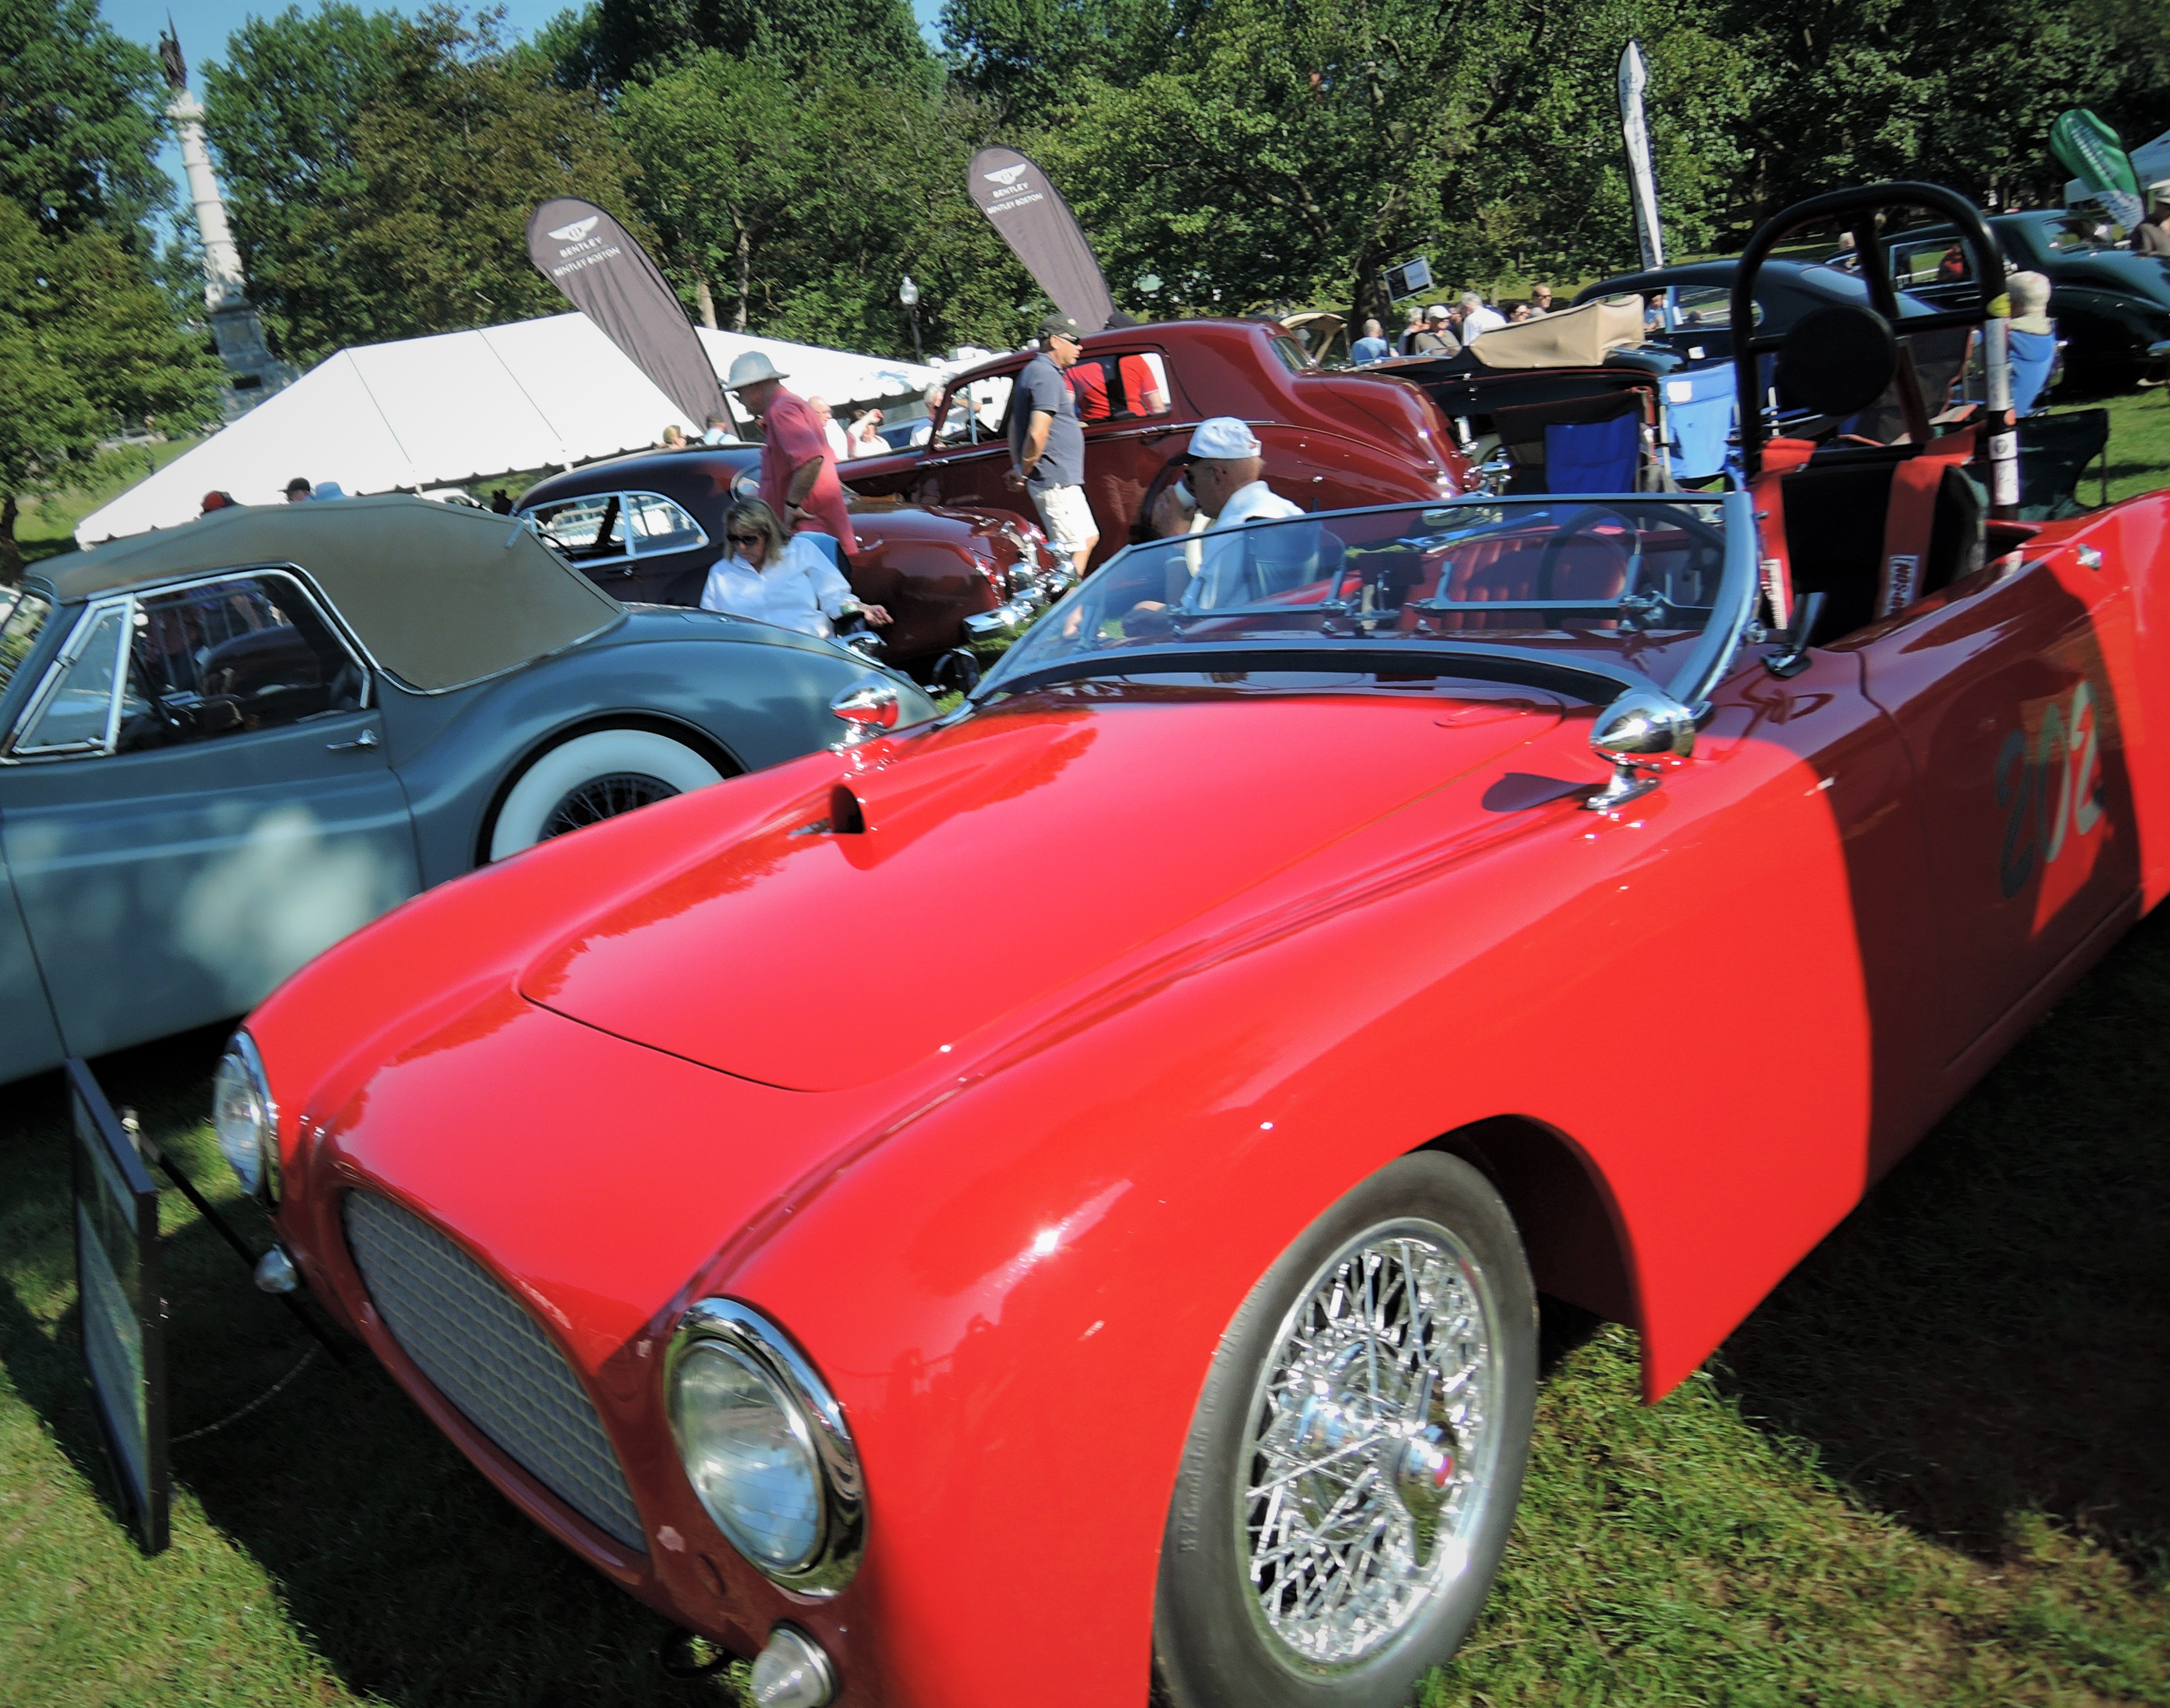 red 1952 MG TD Cisitalia Special - The Boston Cup 2017